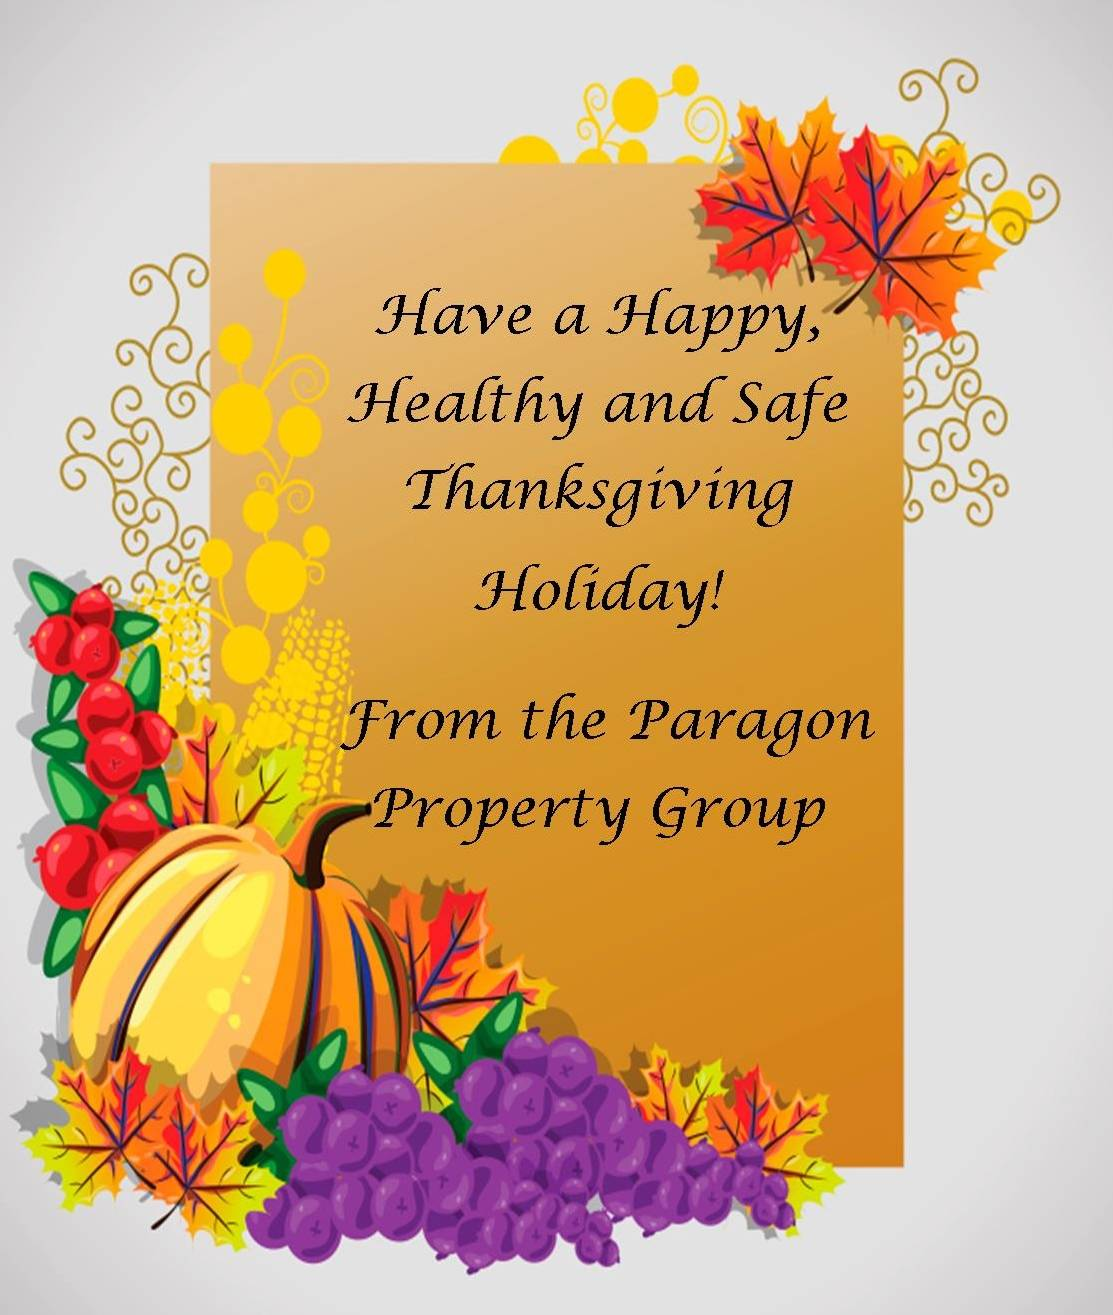 Happy Thanksgiving From The Paragon Property Group